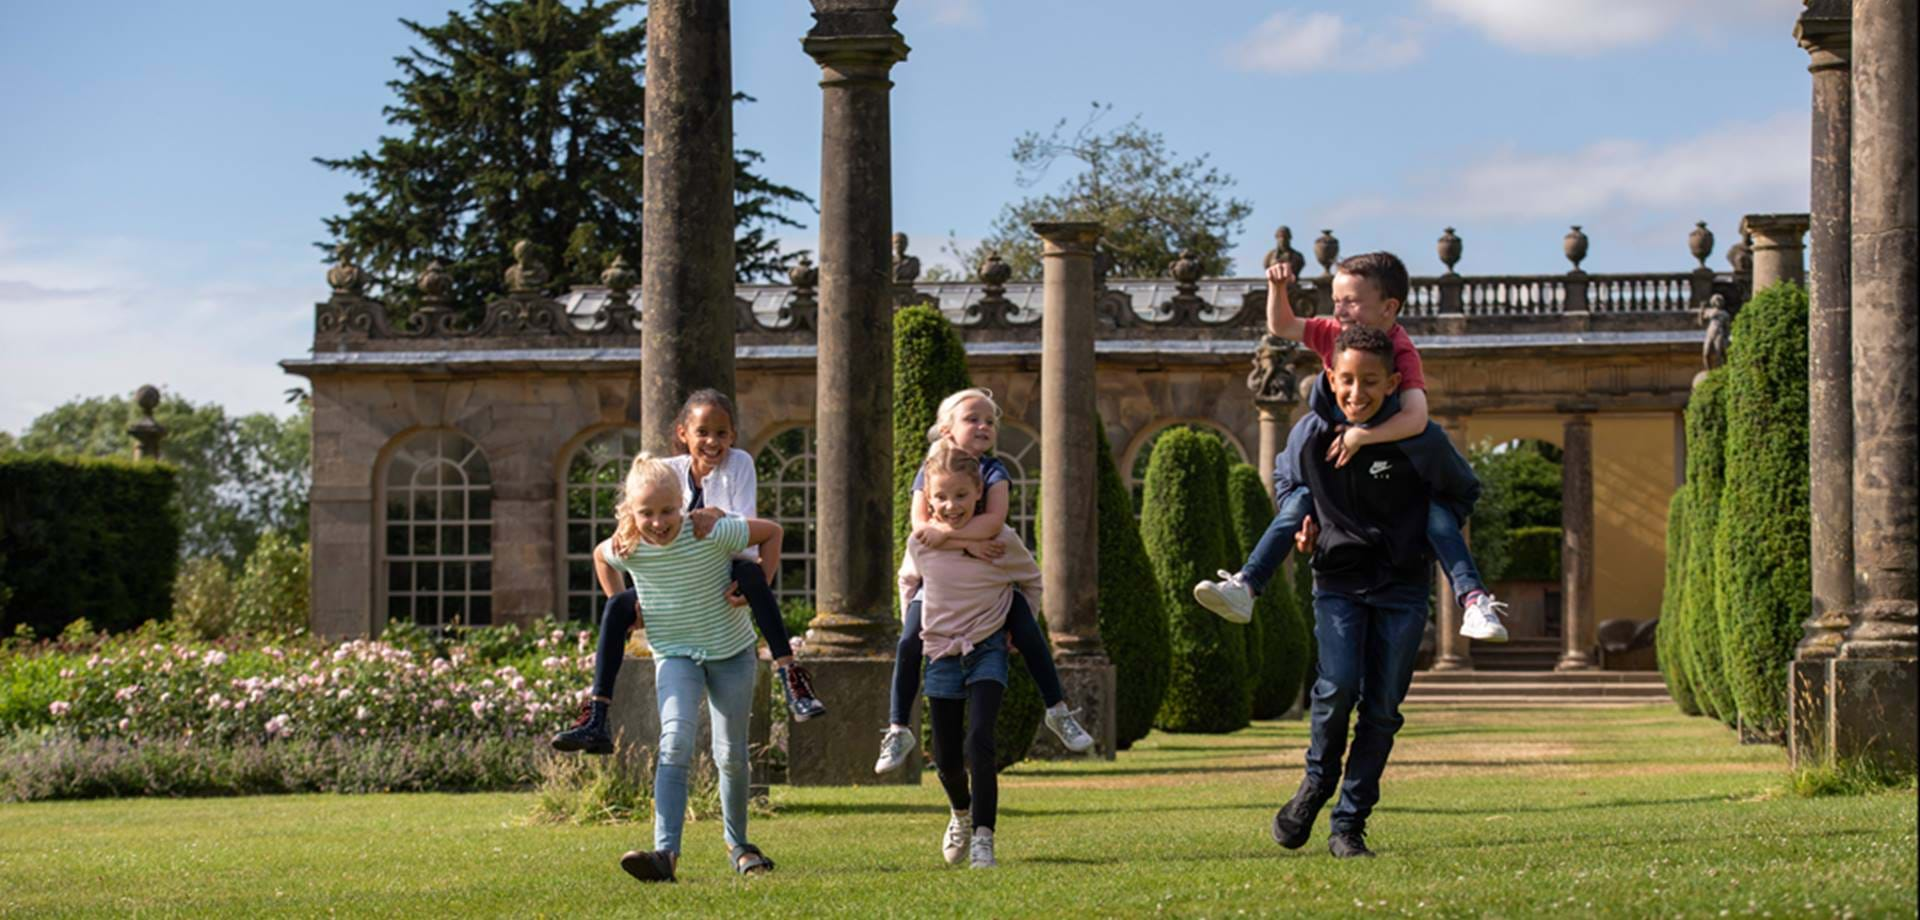 Uncover the secrets of Chatsworth this summer